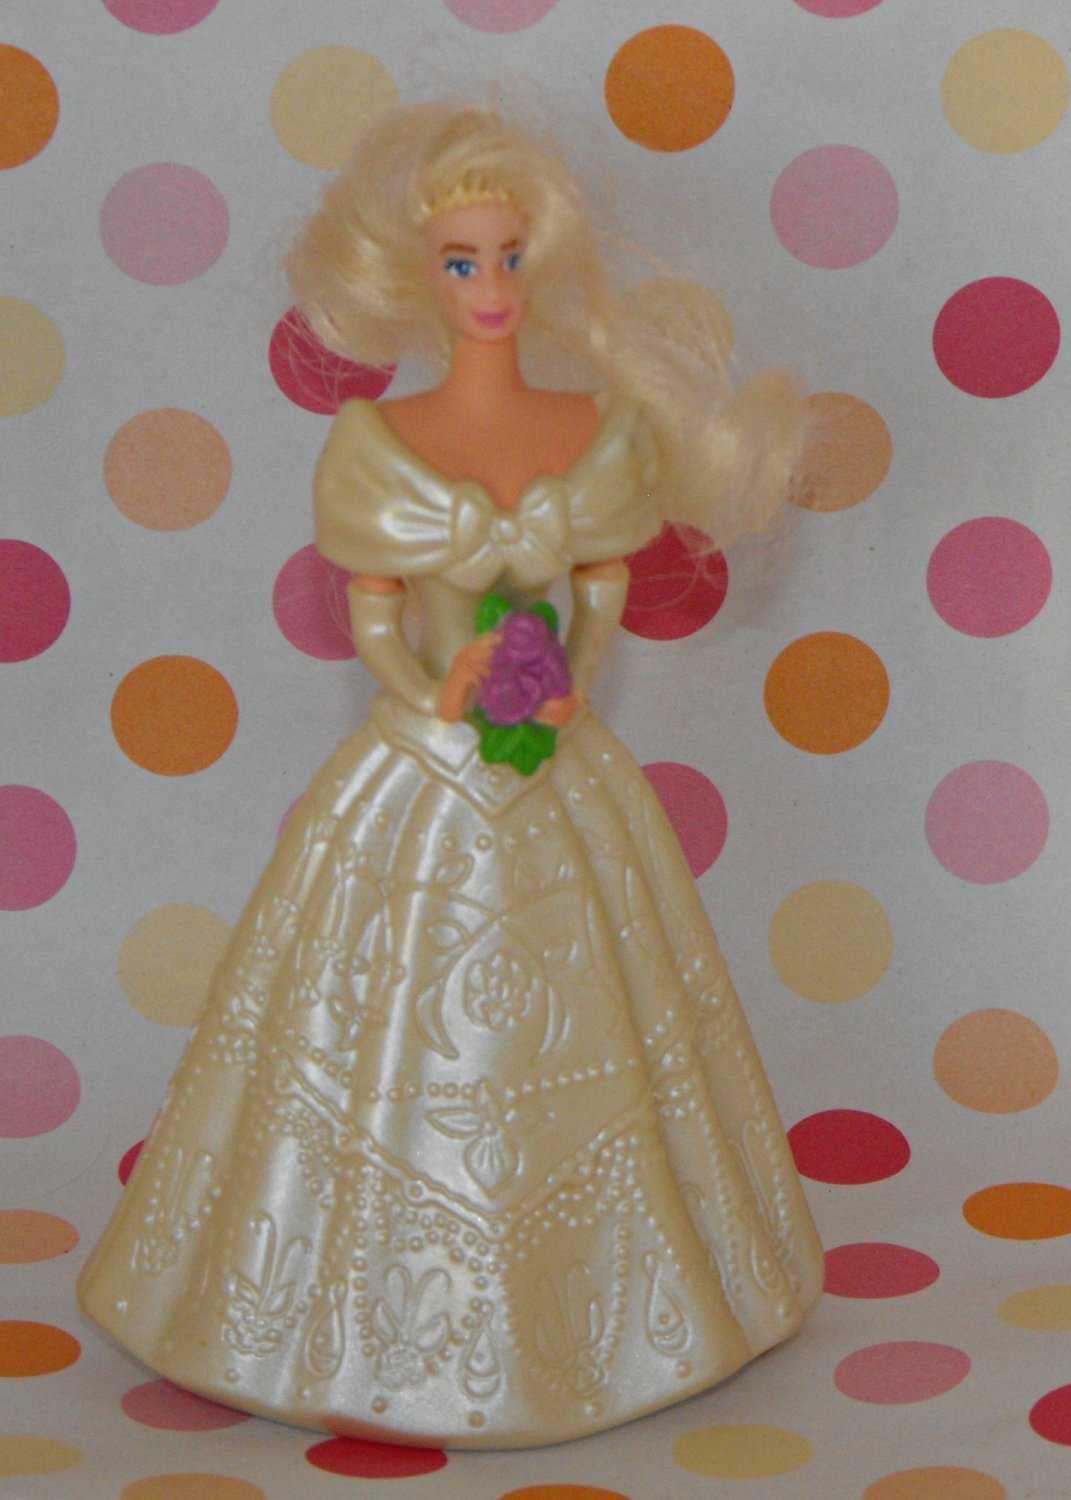 McDONALD'S BARBIE JEWEL AND GLITTER BRIDE